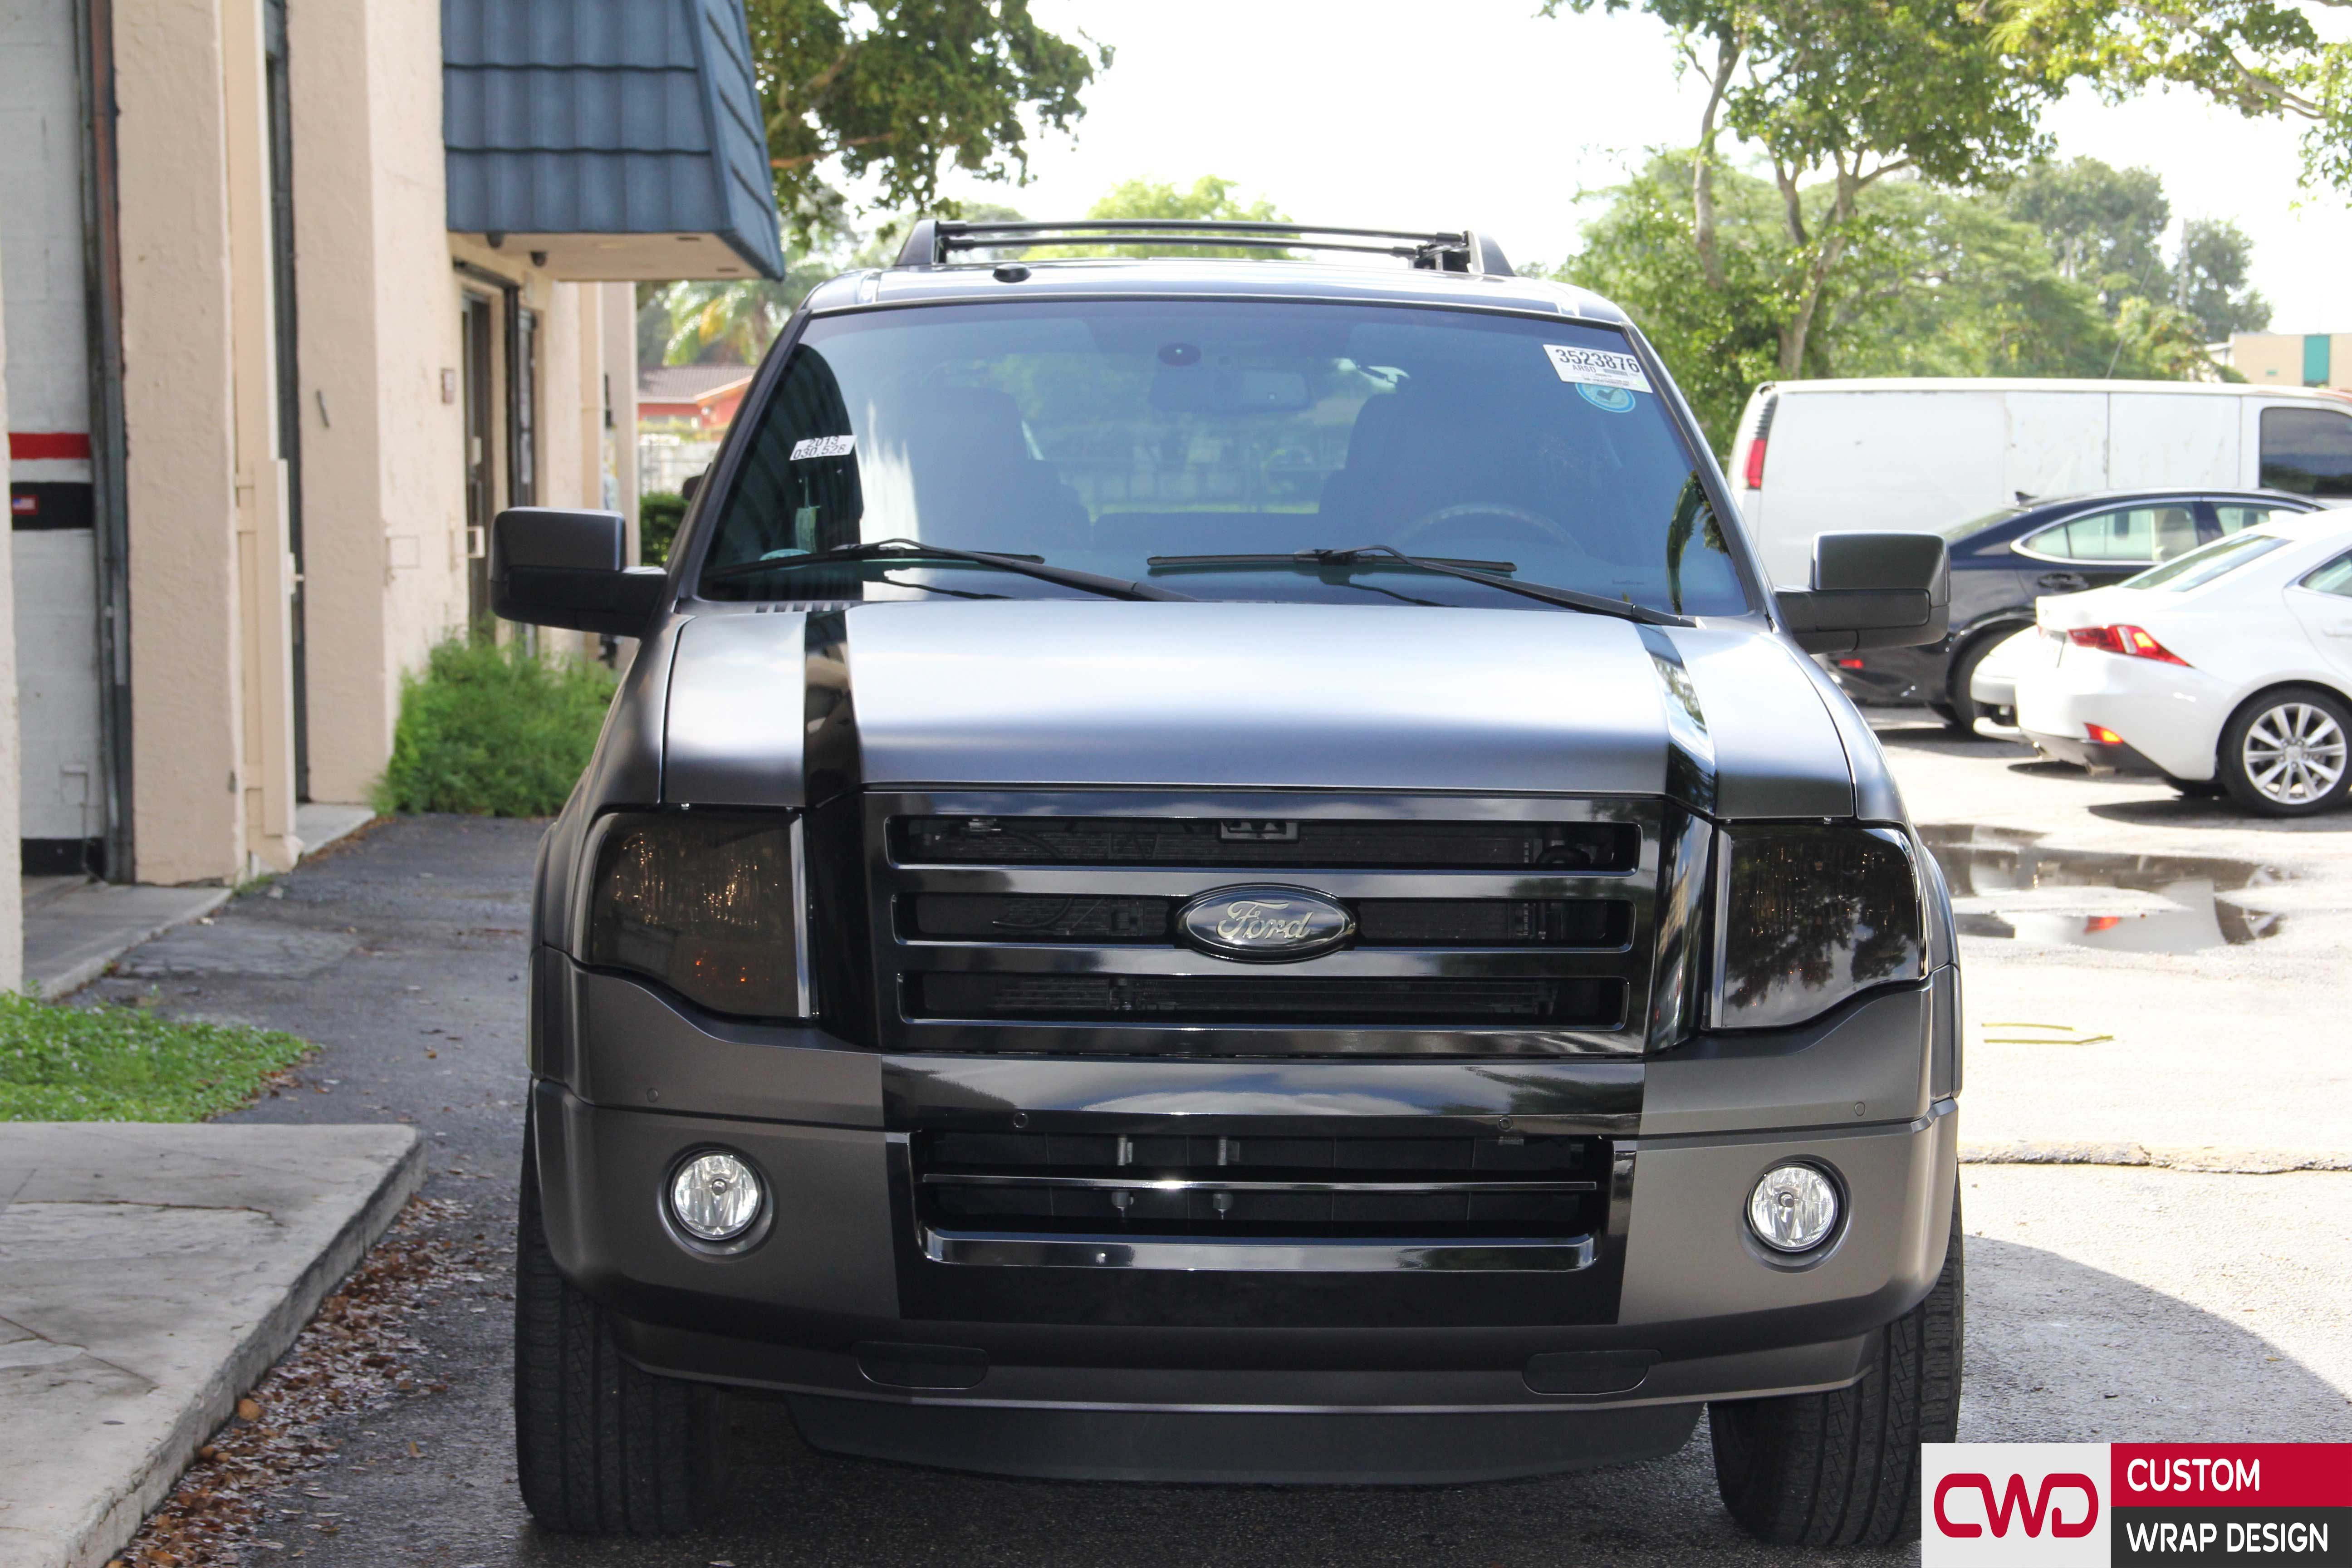 Ford Expedition Full Wrap In Satin Grey 3m Film Book Appointment Today 786 558 4848 Www Cwdwrap Com Car Carwrap Ford Expedition Expedition New Trucks